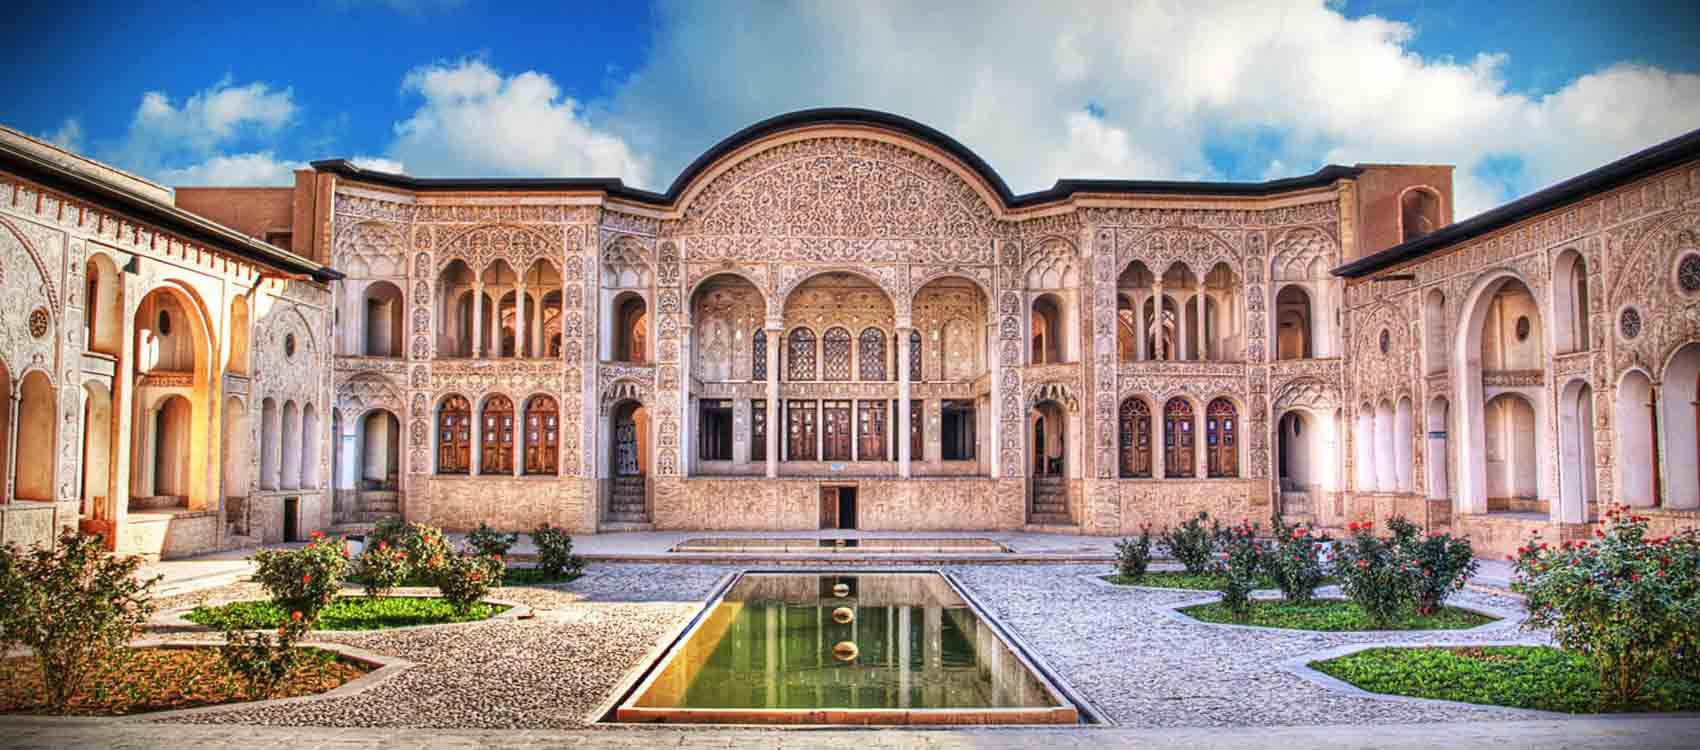 Tabatabaei house,Kashan,Iran attractions, Iran Travel blog,Iran tour,tr2p.com, tour operator in Iran, destinations Iran